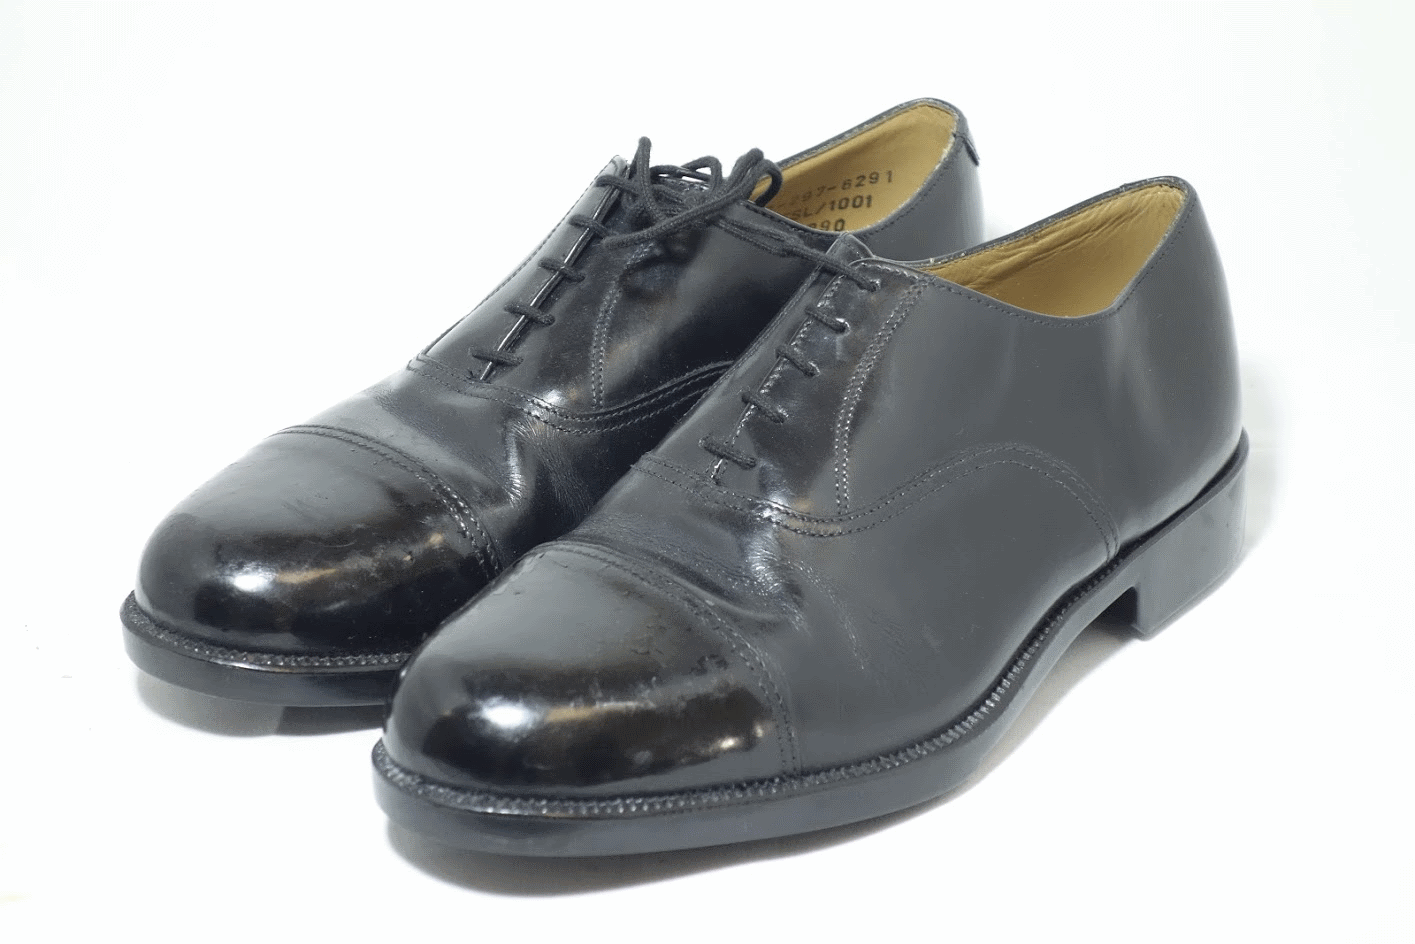 British army surplus black leather parade shoes with toe cap  RAF cadet